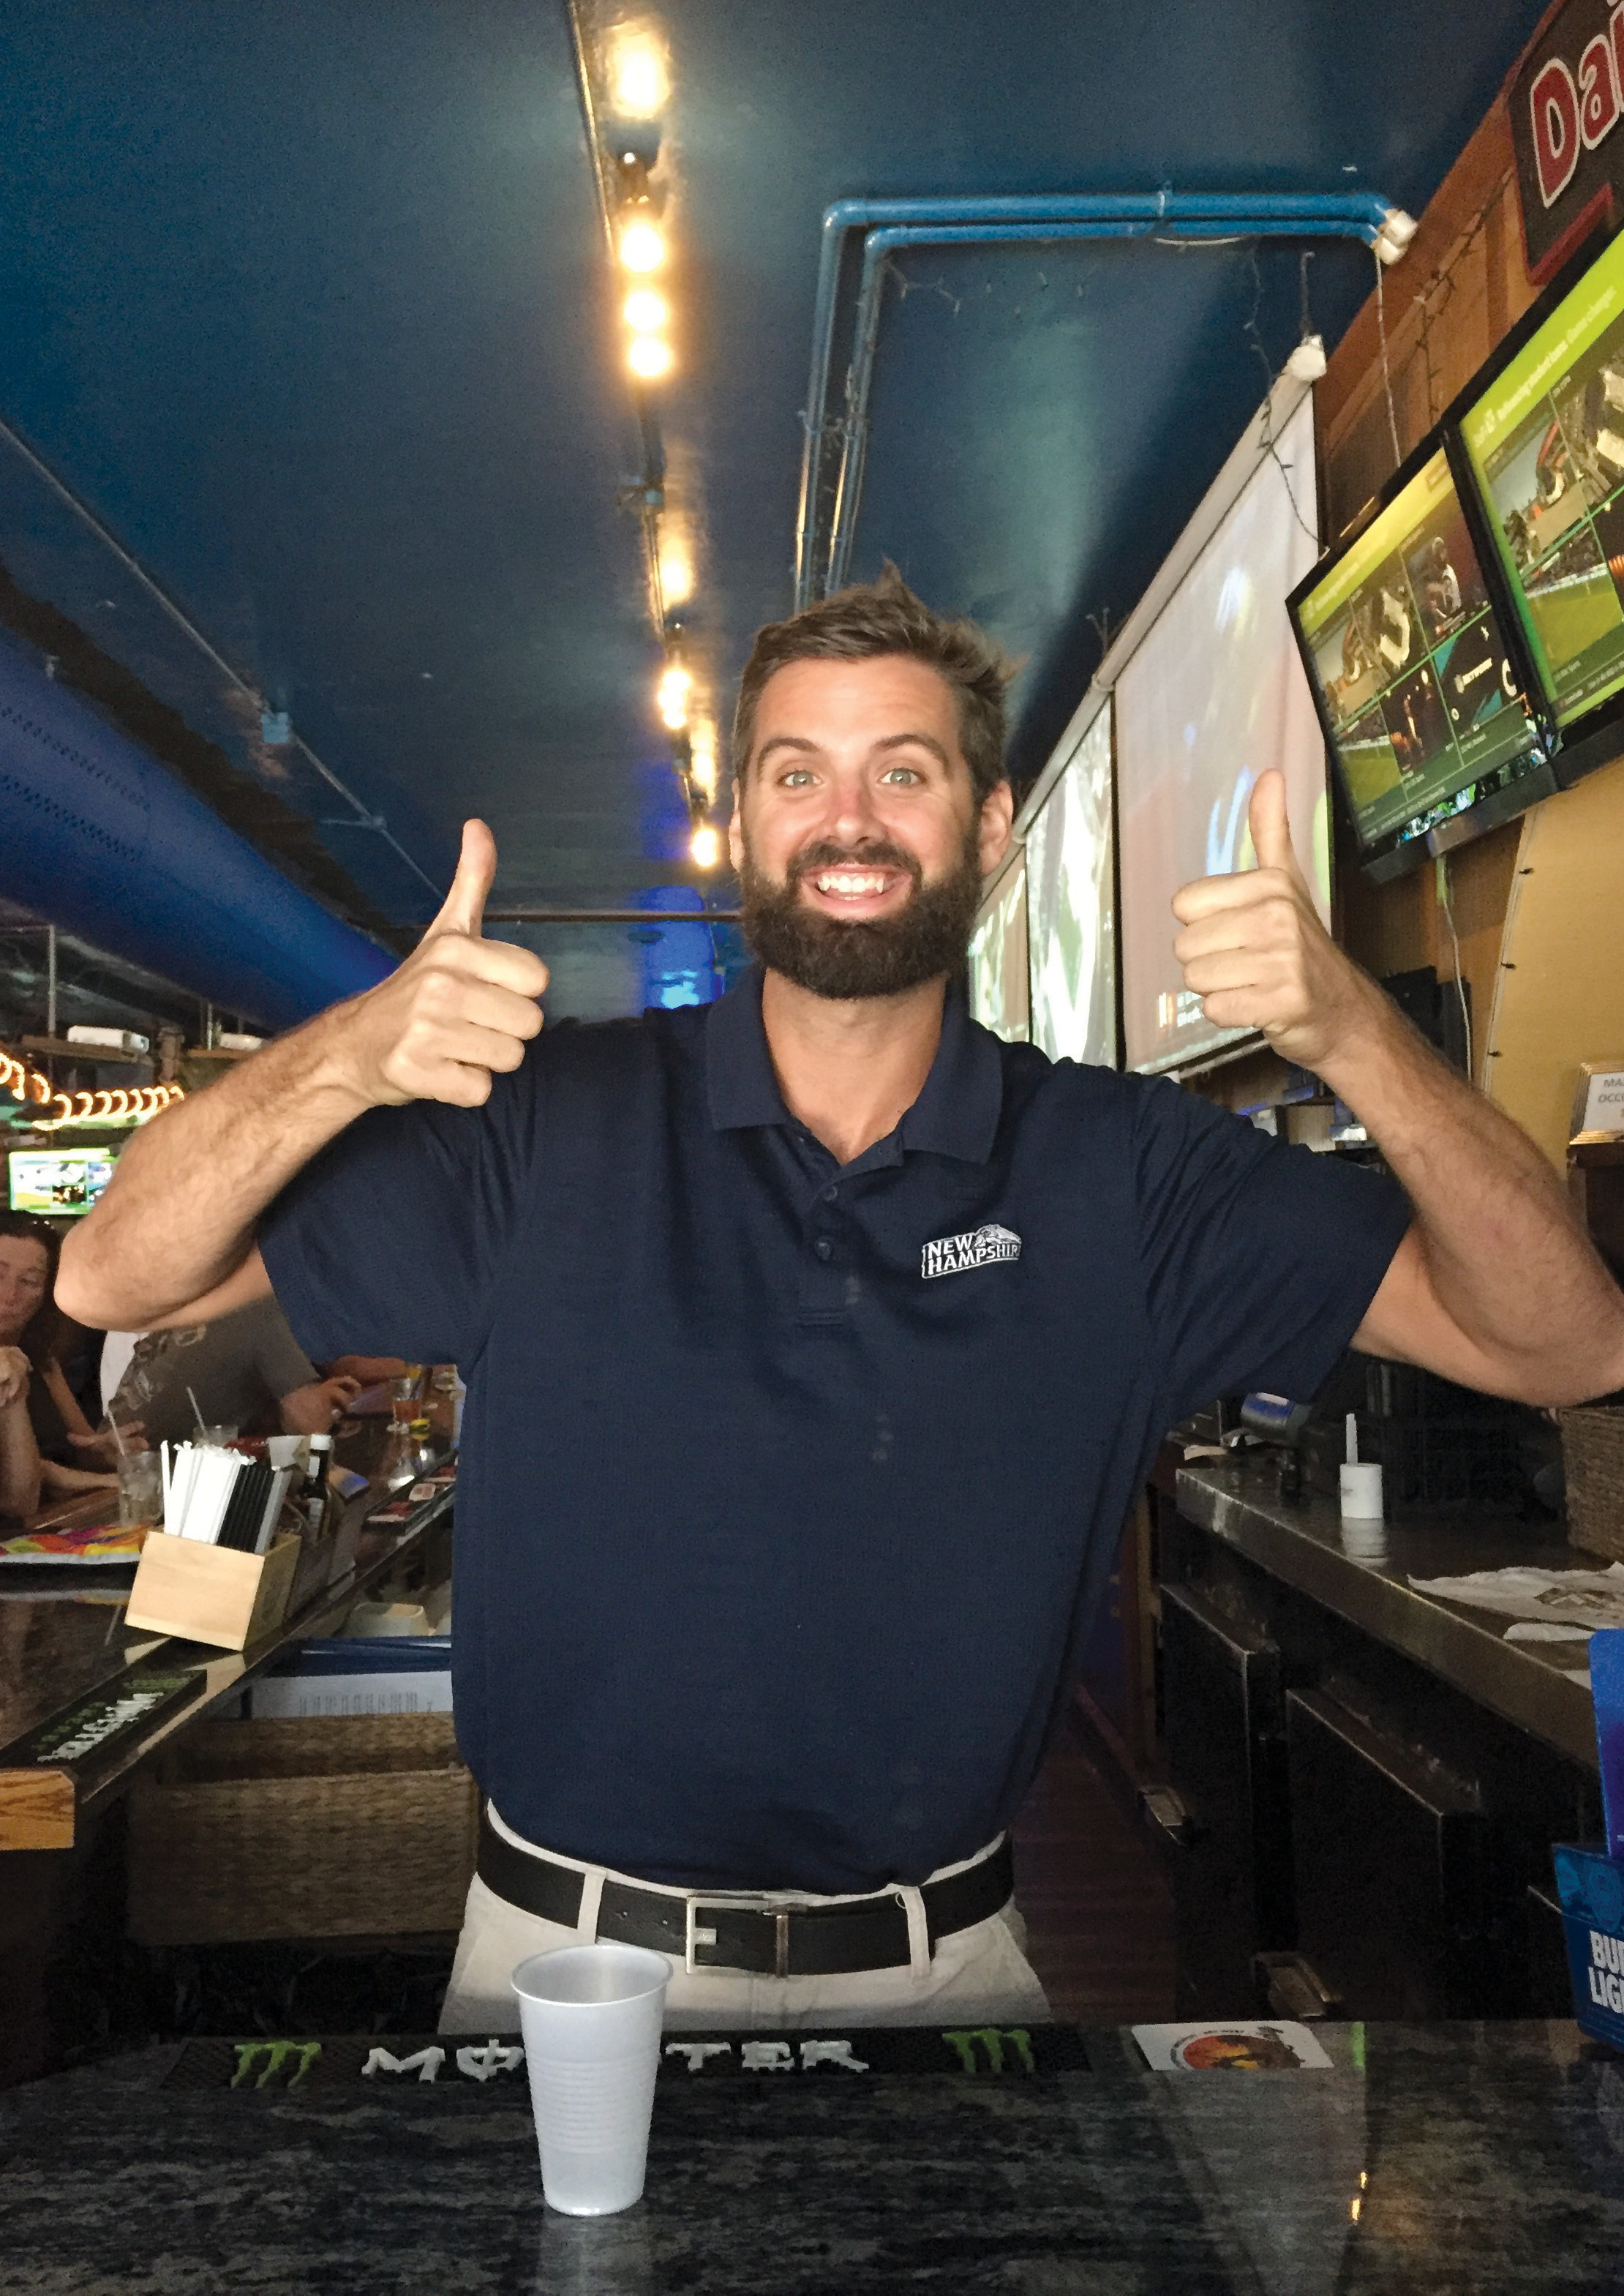 Bartender Matt Sheehan gives two thumbs up. COURTESY PHOTO